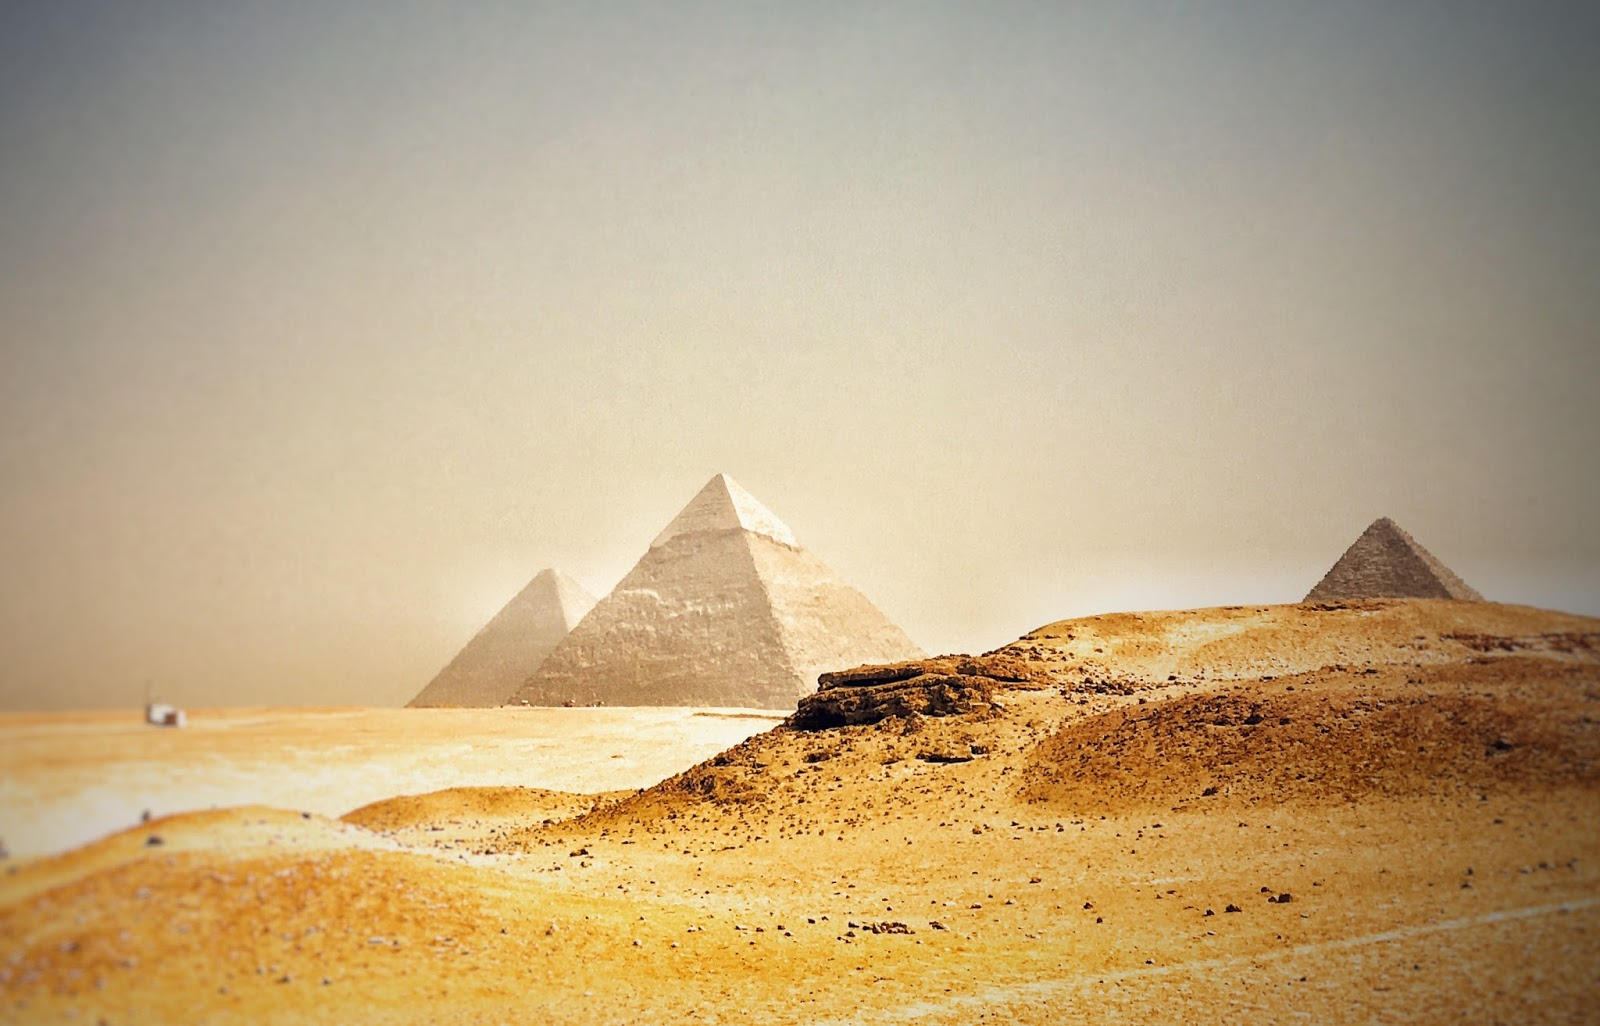 What is interesting in Egypt 64